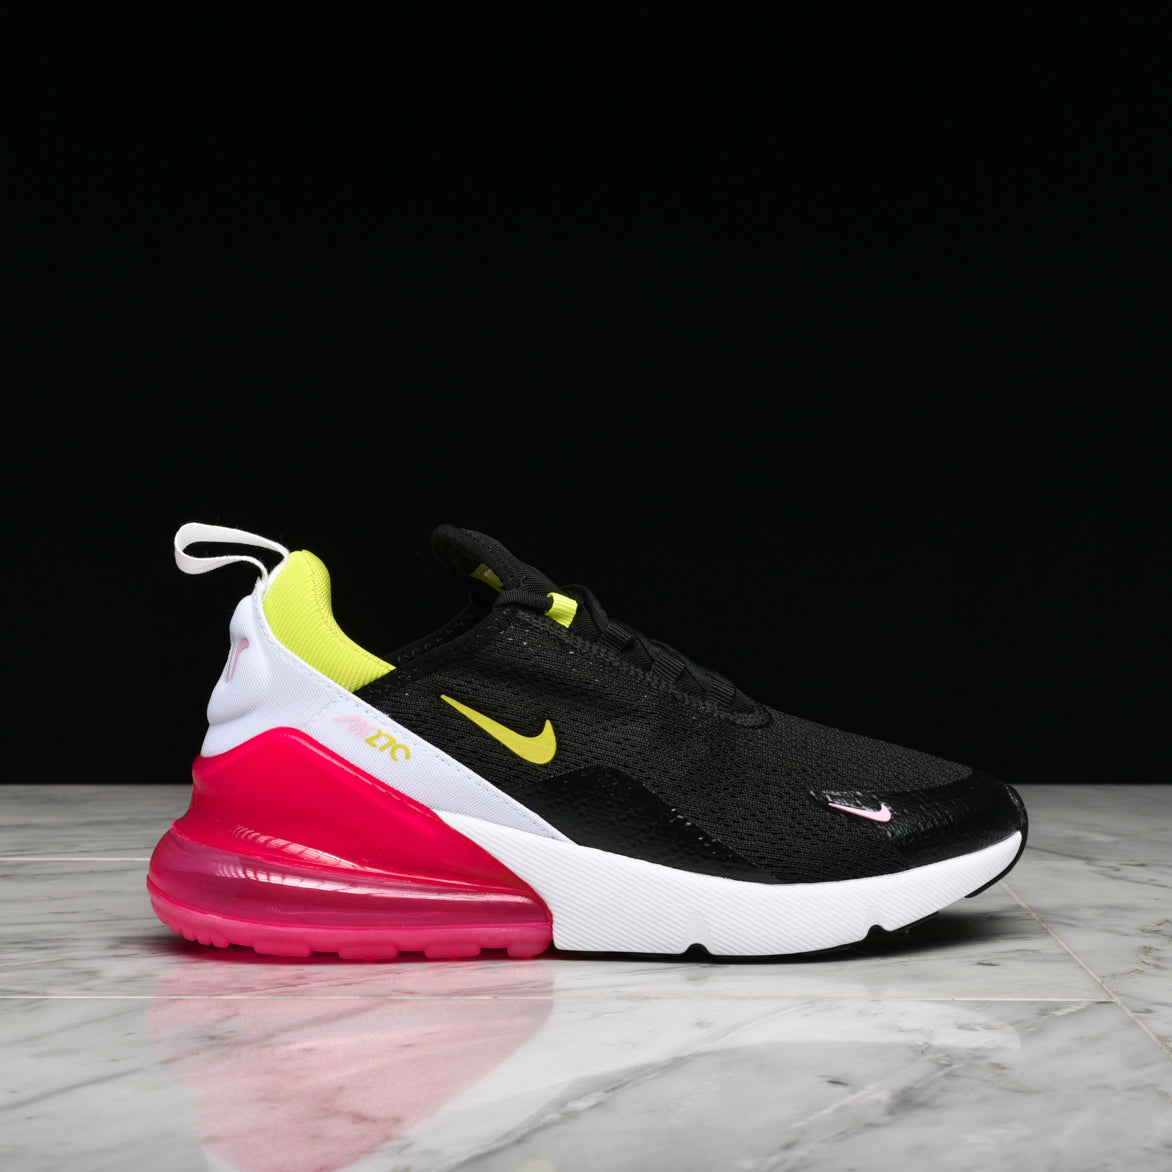 best loved 7521f 1cdbf WMNS AIR MAX 270 - BLACK / CYBER / PINK RISE